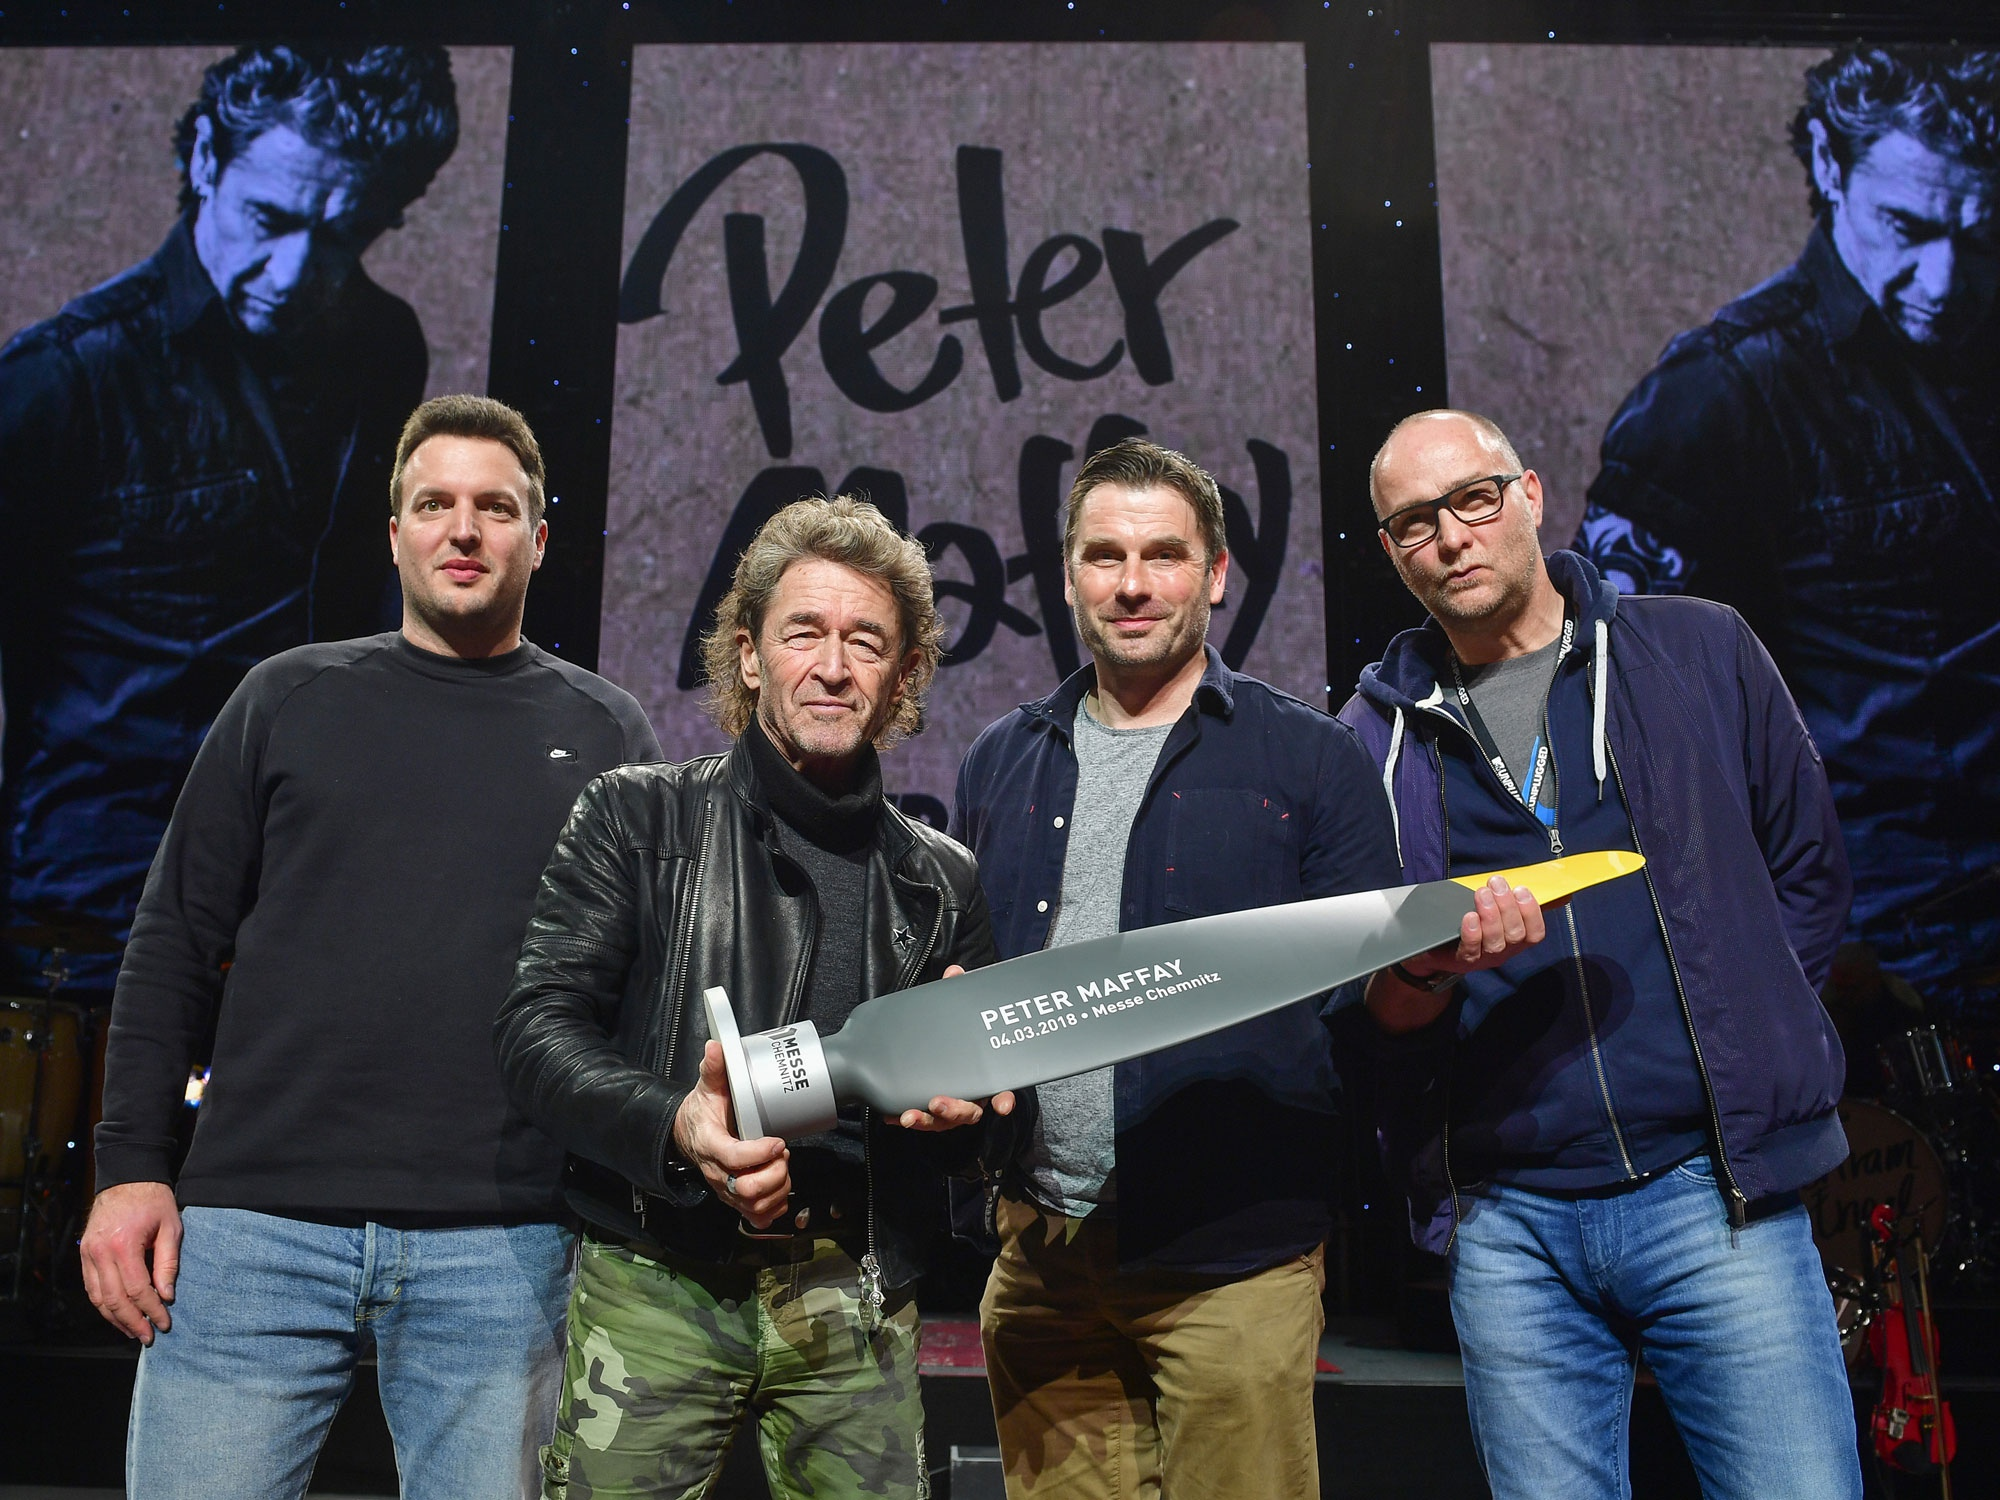 Sold Out Award der Messe Chemnitz für Peter Maffay